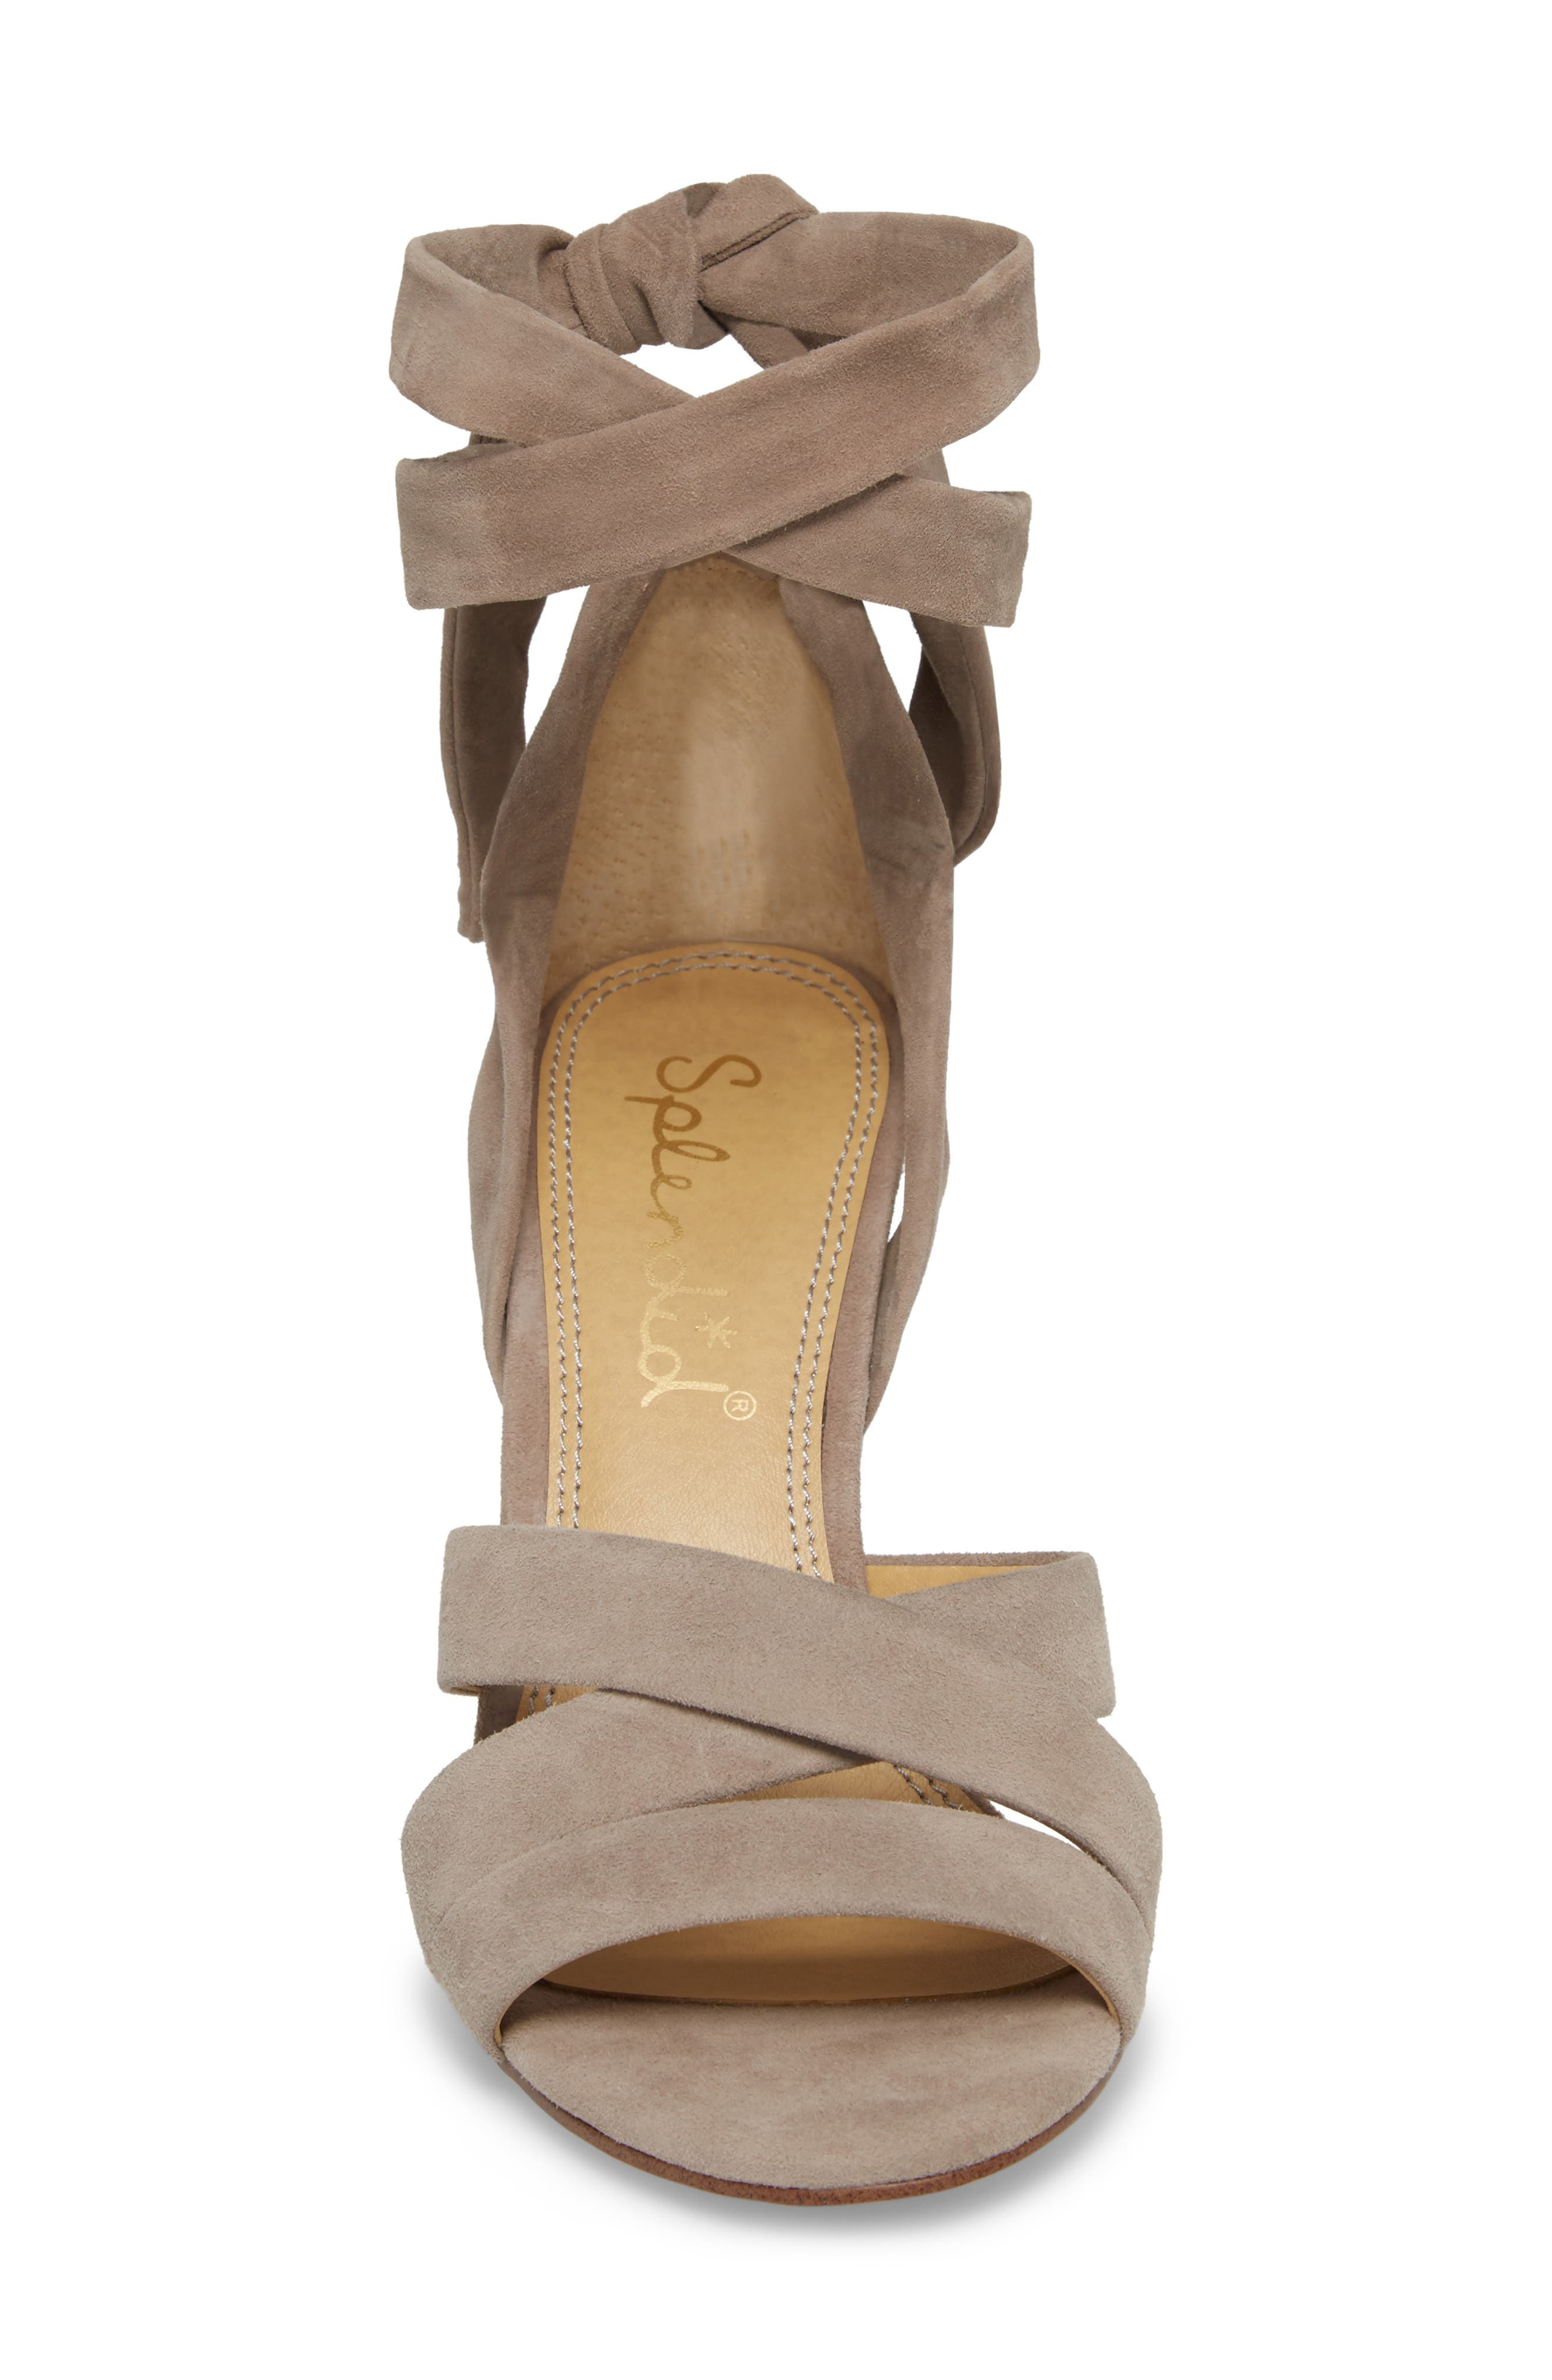 Fergie Lace-Up Sandal,                             Alternate thumbnail 5, color,                             Taupe Suede